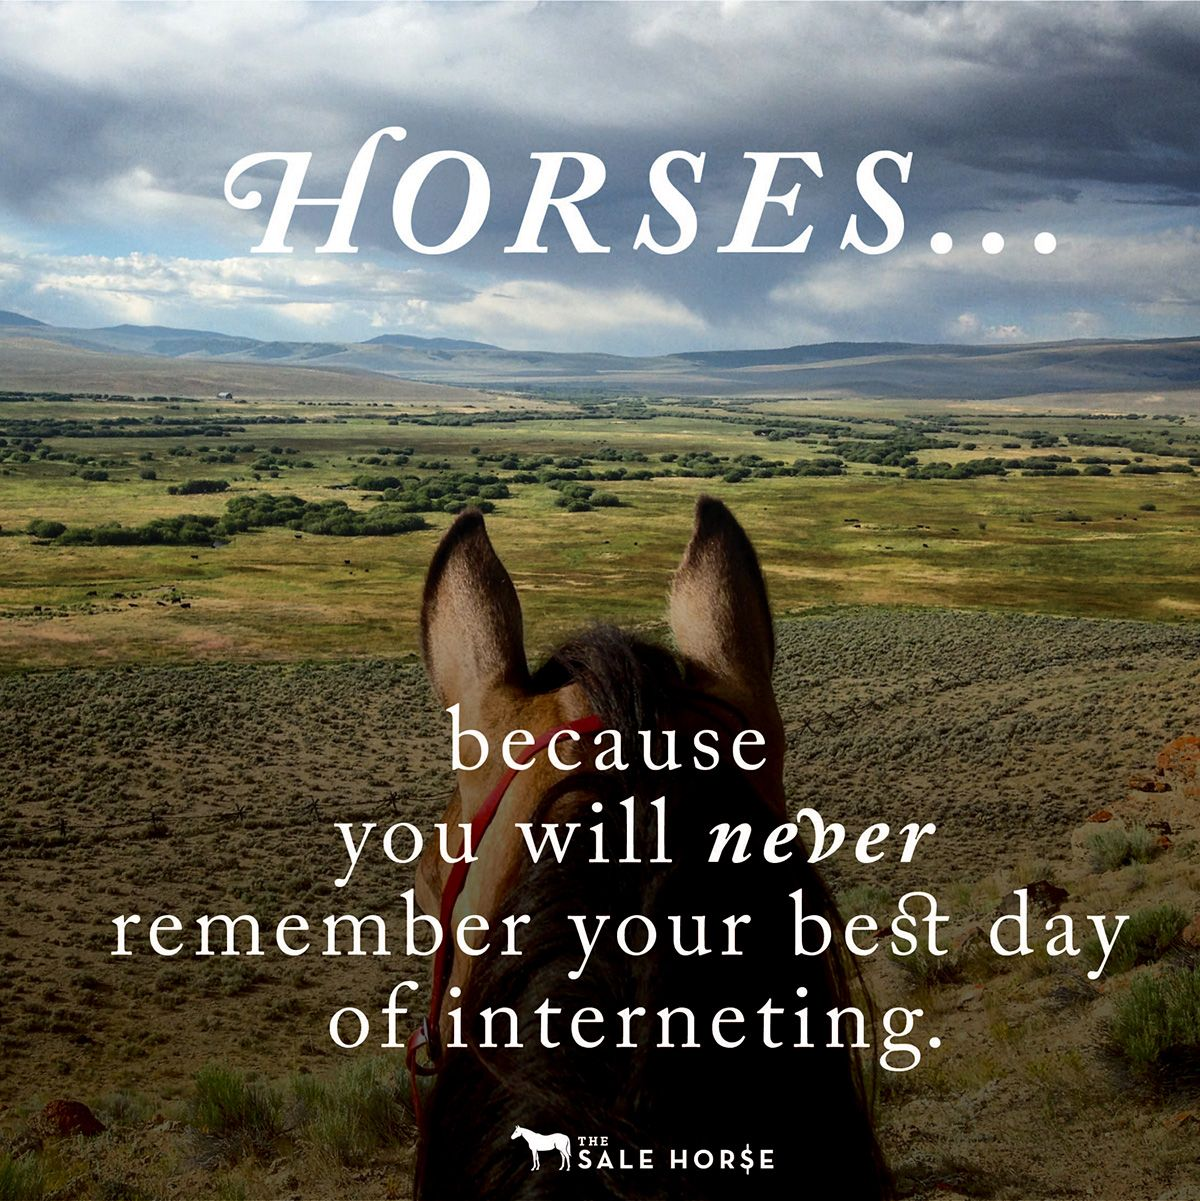 17 Horse Quotes to Inspire Action To Git 'er Done In 2017 ...